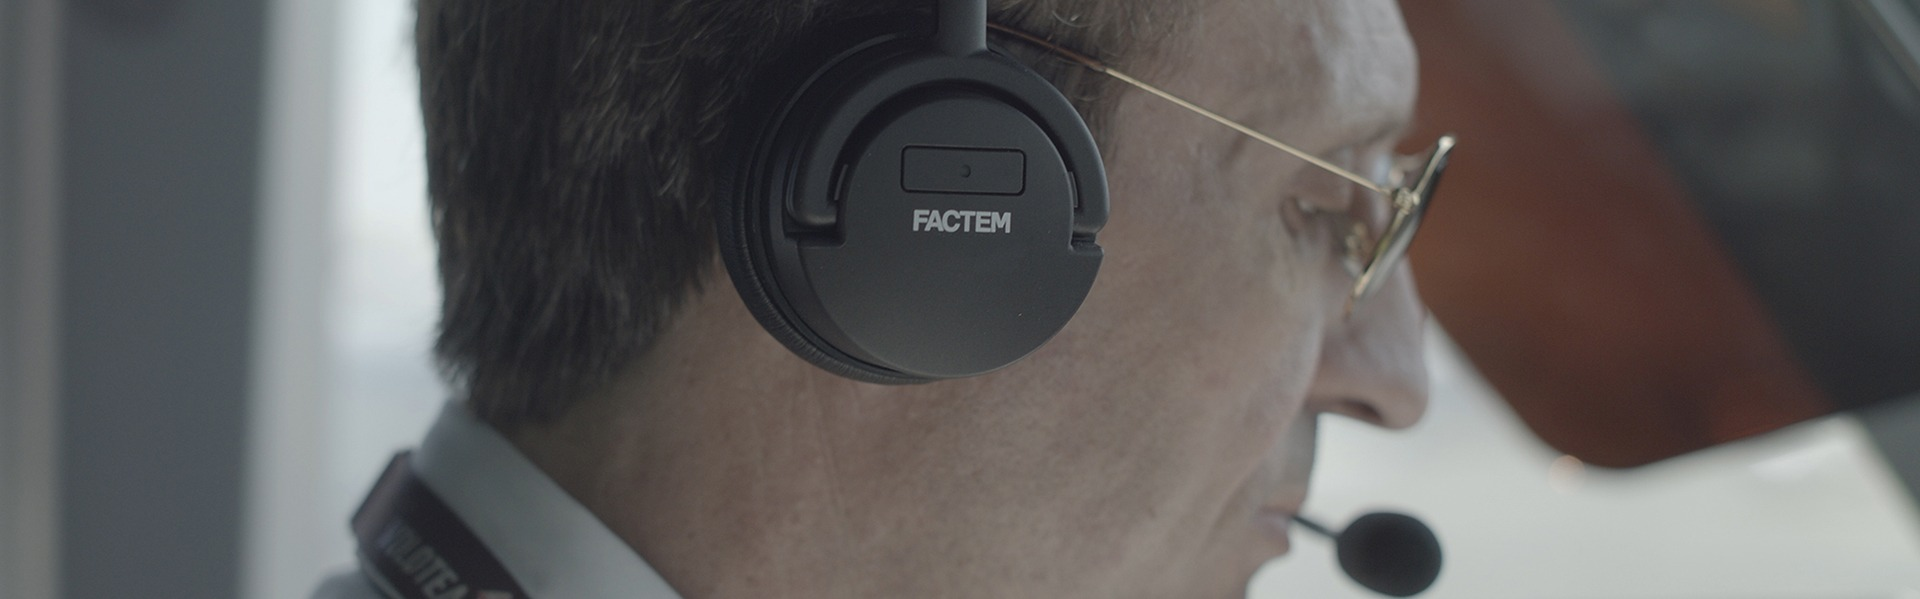 Pilot headsets. Company Factem takes off with Airbus in Bayeux, France